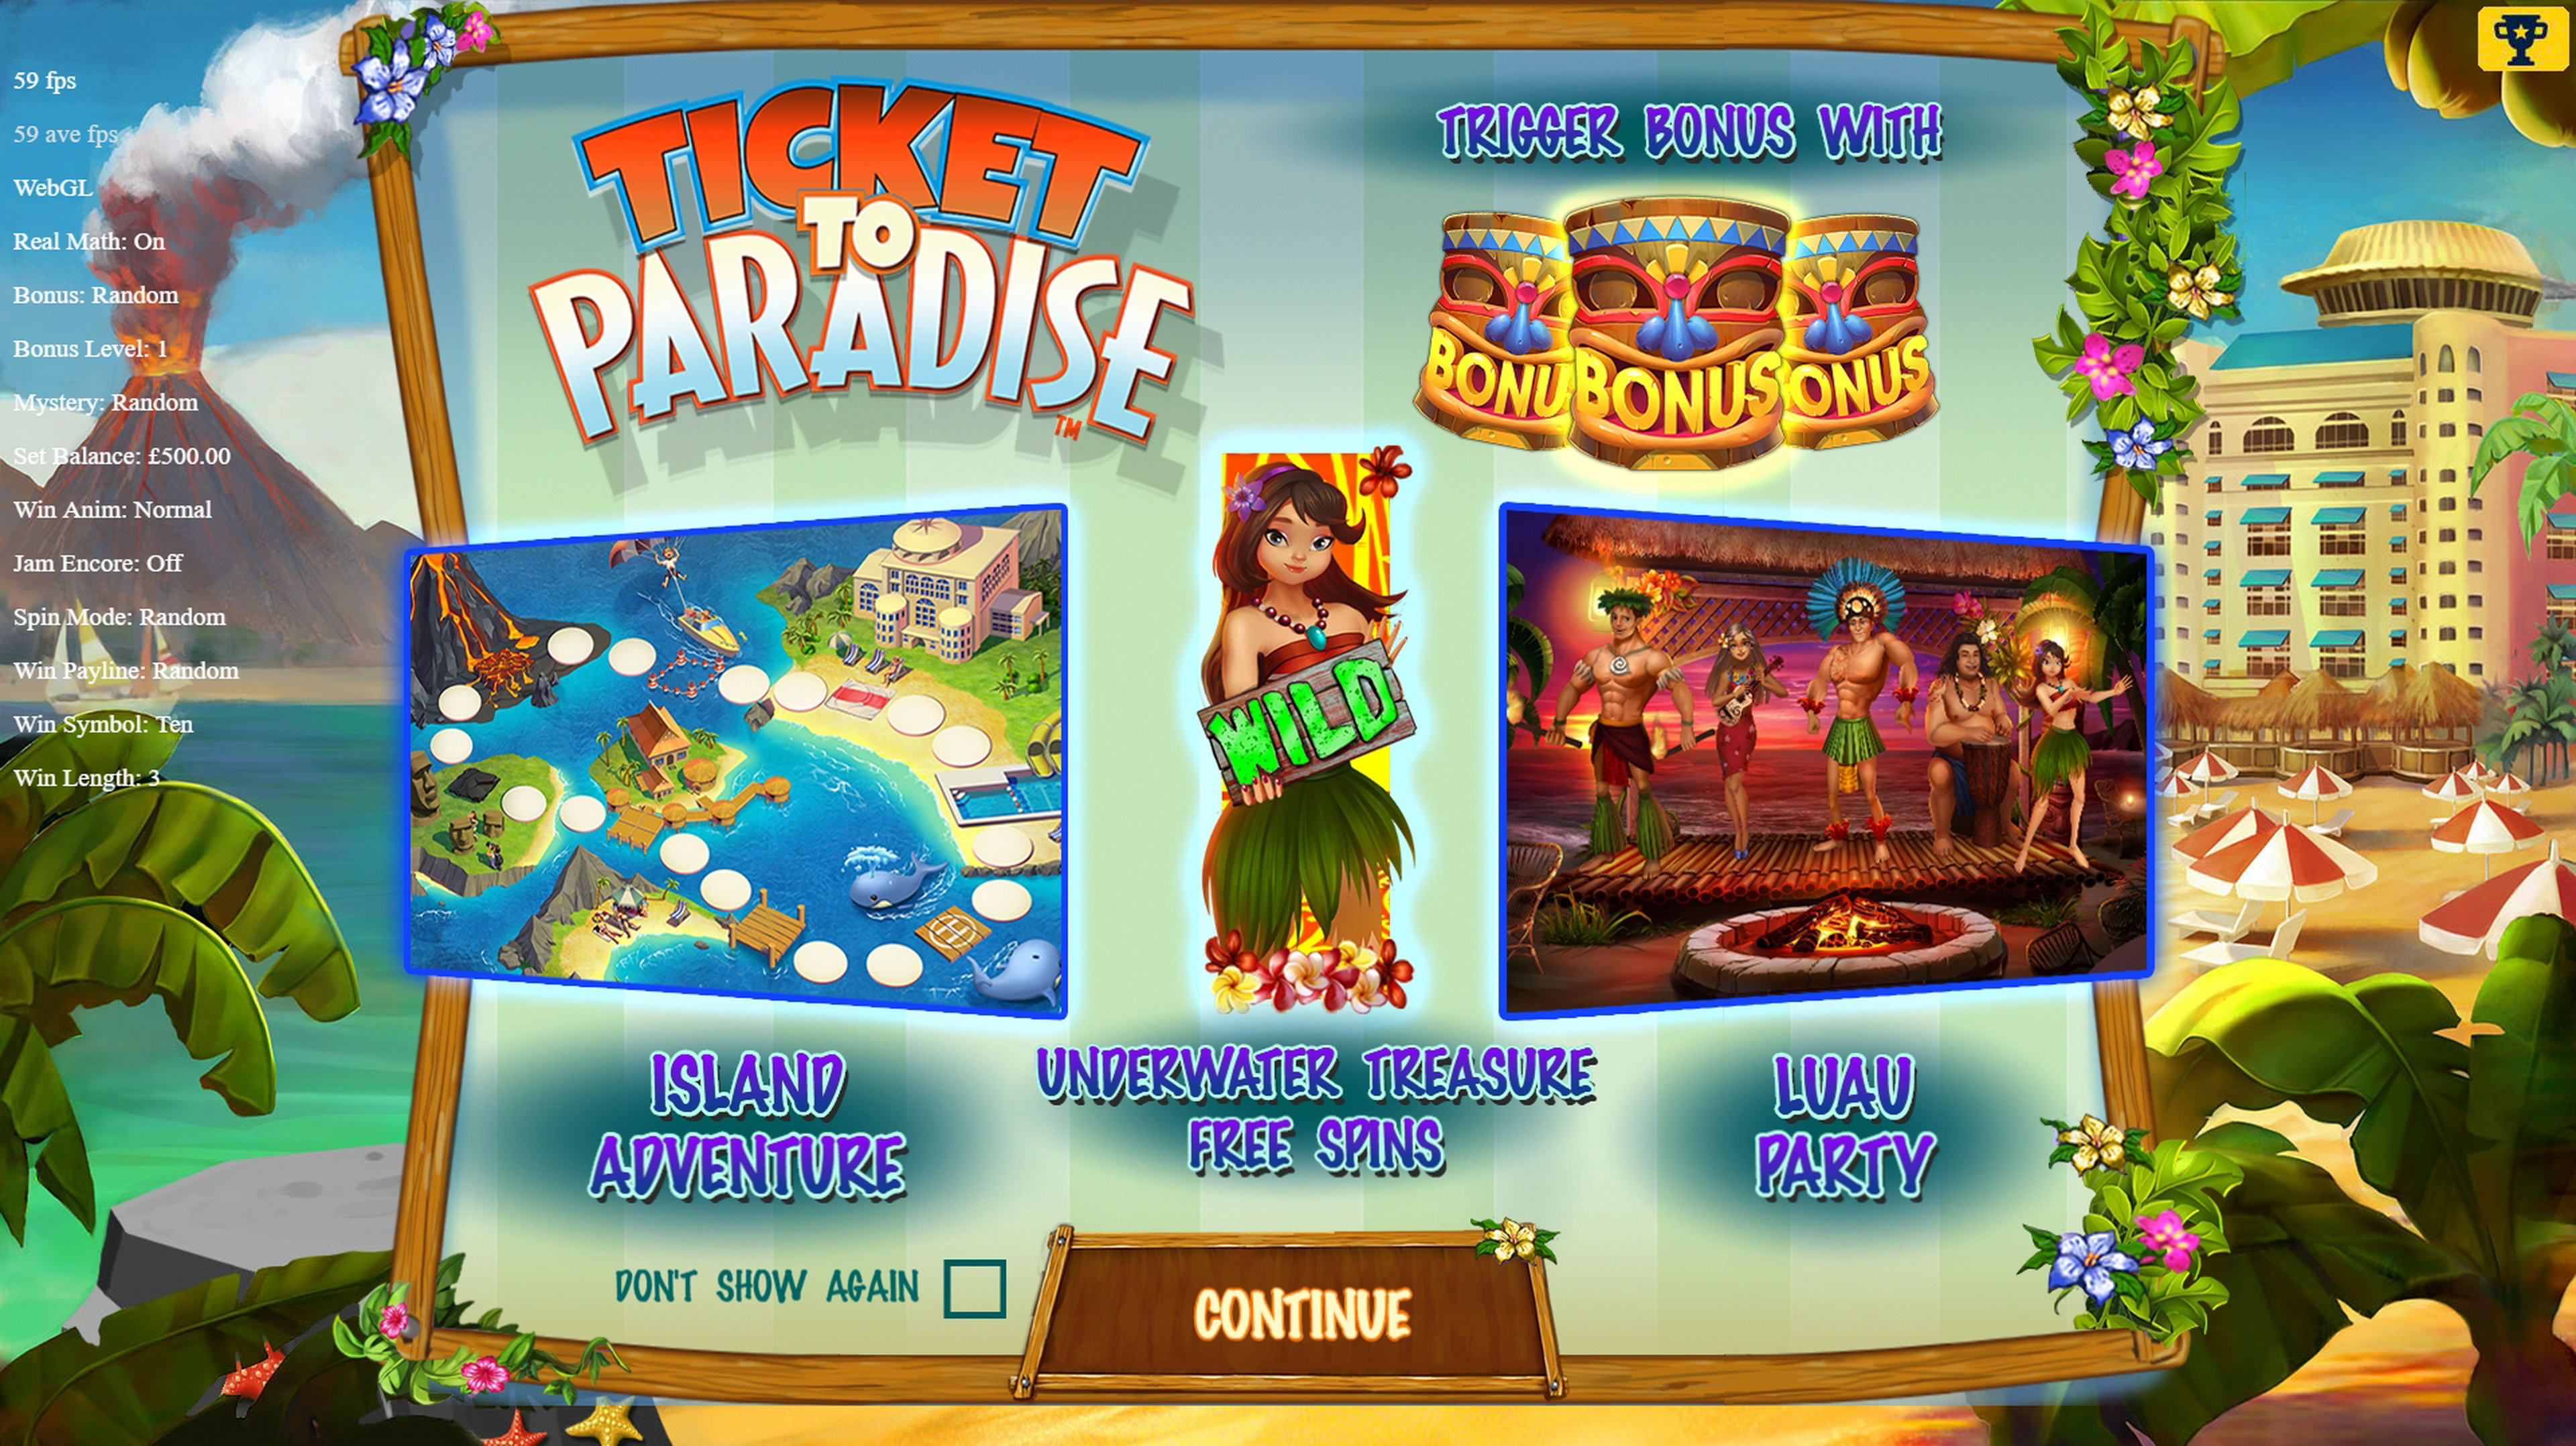 Play Ticket to Paradise Free Casino Slot Game by Asylum Labs Inc.